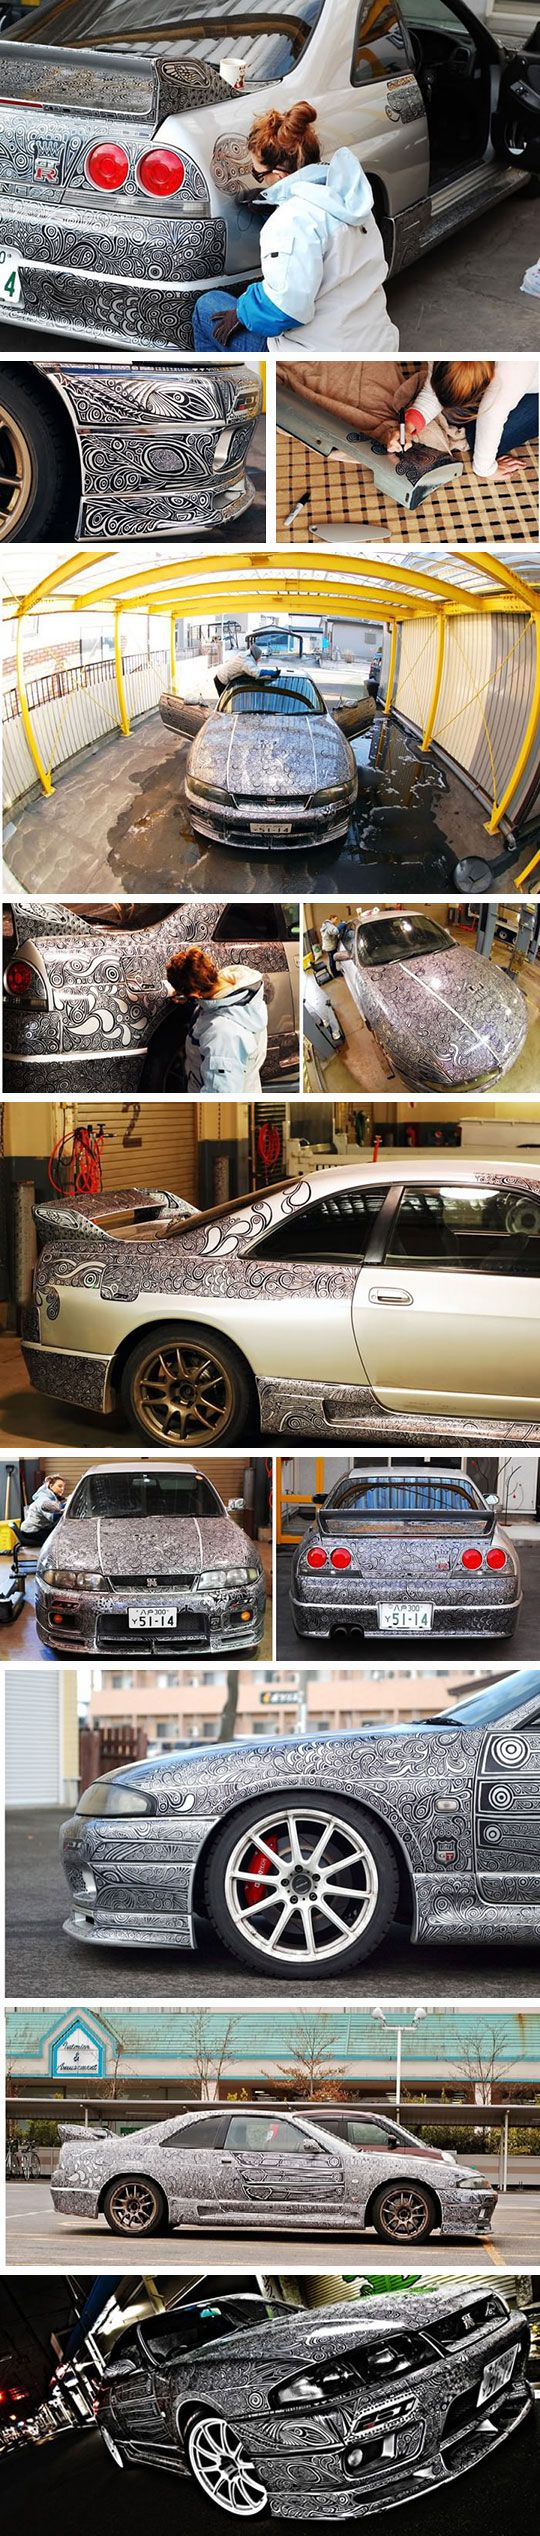 This Is My Friends Car Done Completely In Sharpie Car Pics - Artist wife doodles husbands car